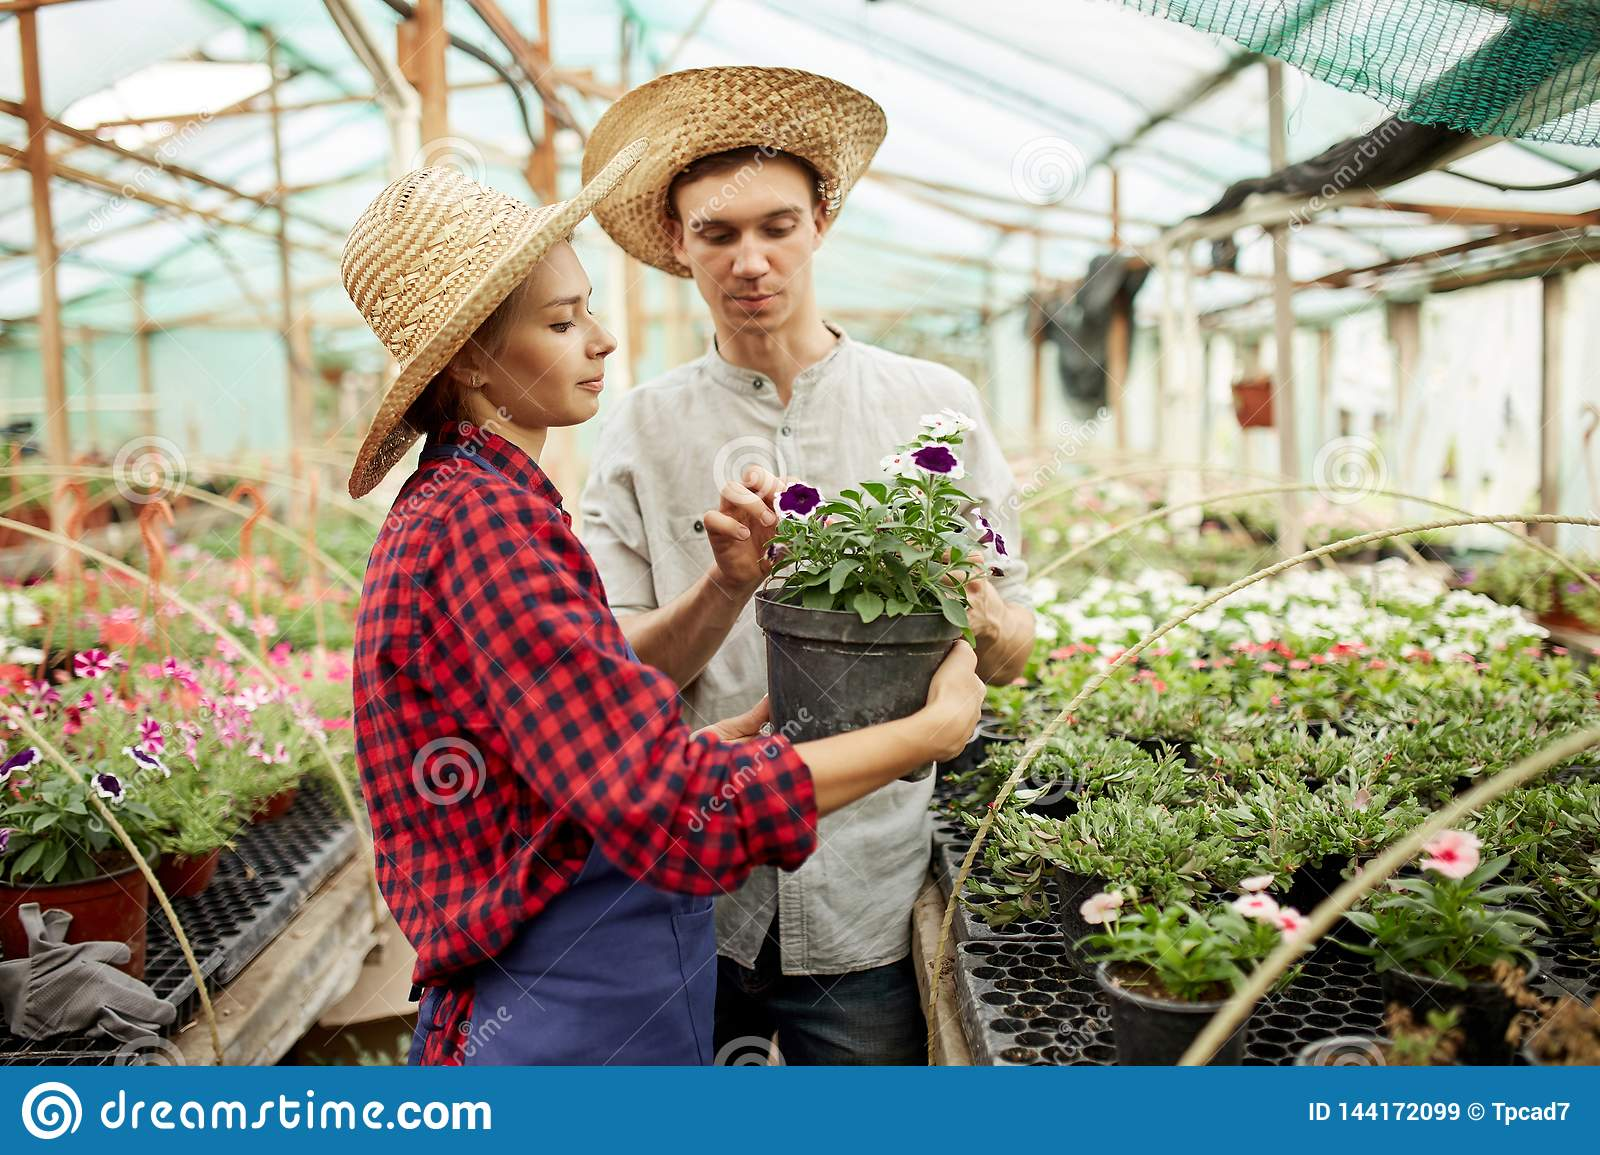 Guy and girl gardeners  in a straw hats holds and looks at the pot with flower in greenhouse on a sunny day.